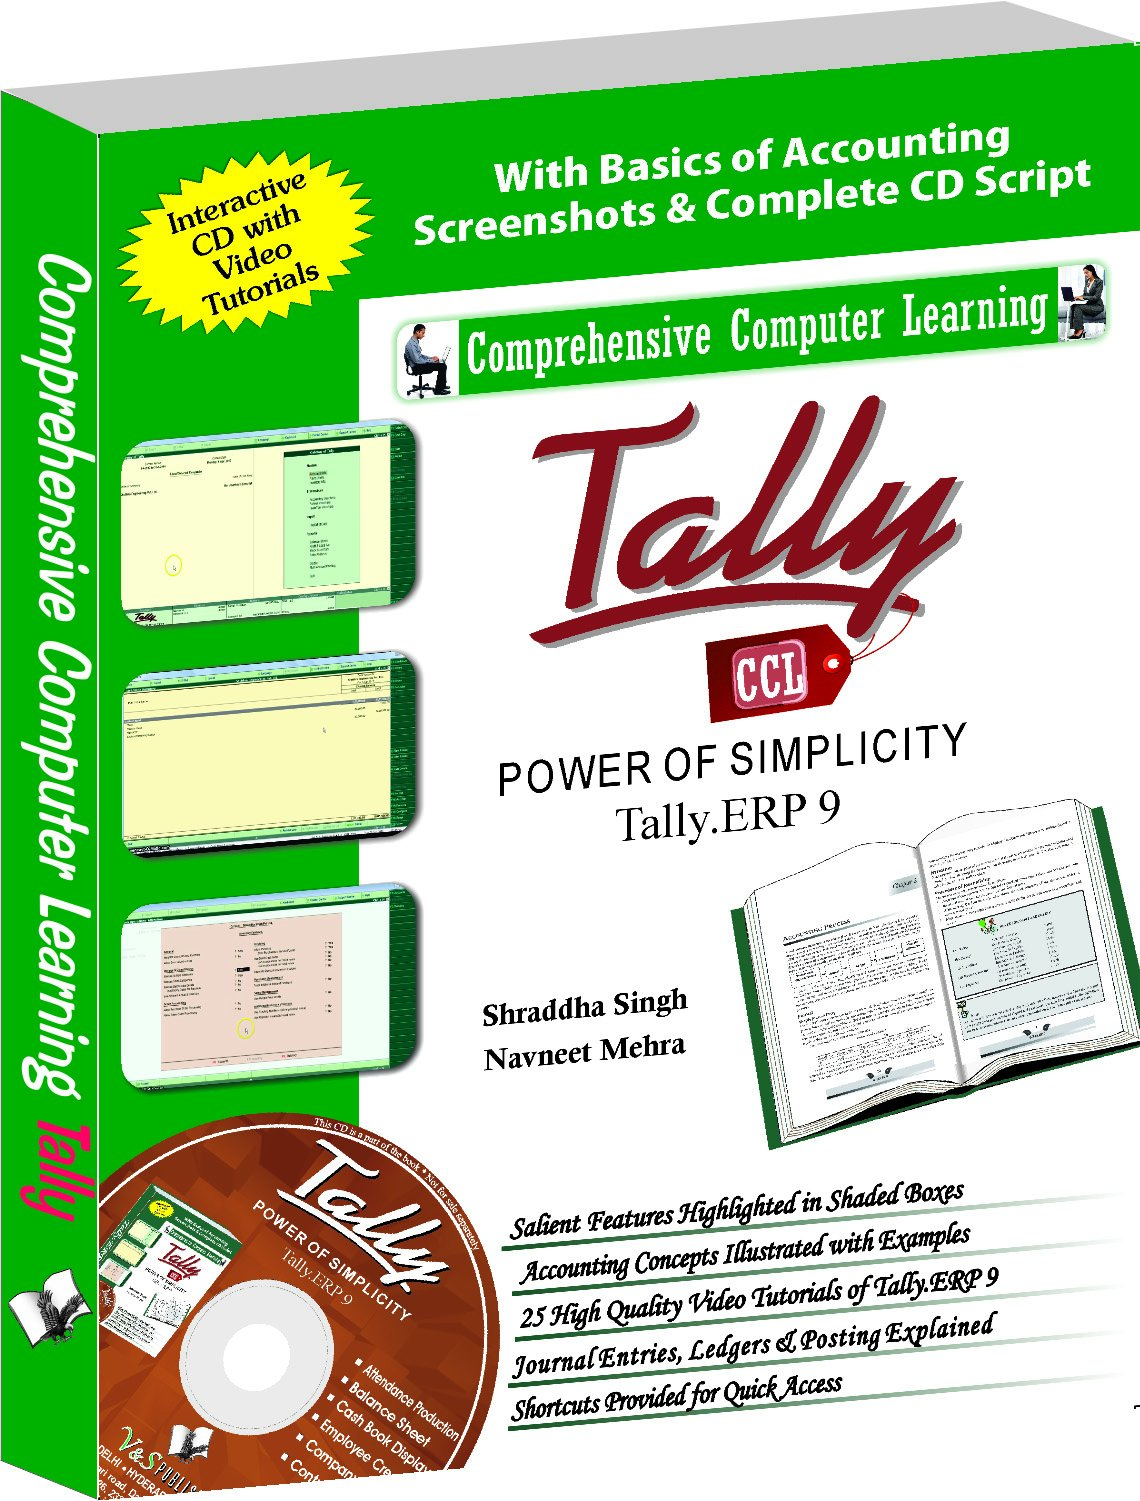 Buy Tally ERP 9 (Power of Simplicity): Software for Business and Accounts  Book Online at Low Prices in India | Tally ERP 9 (Power of Simplicity):  Software ...